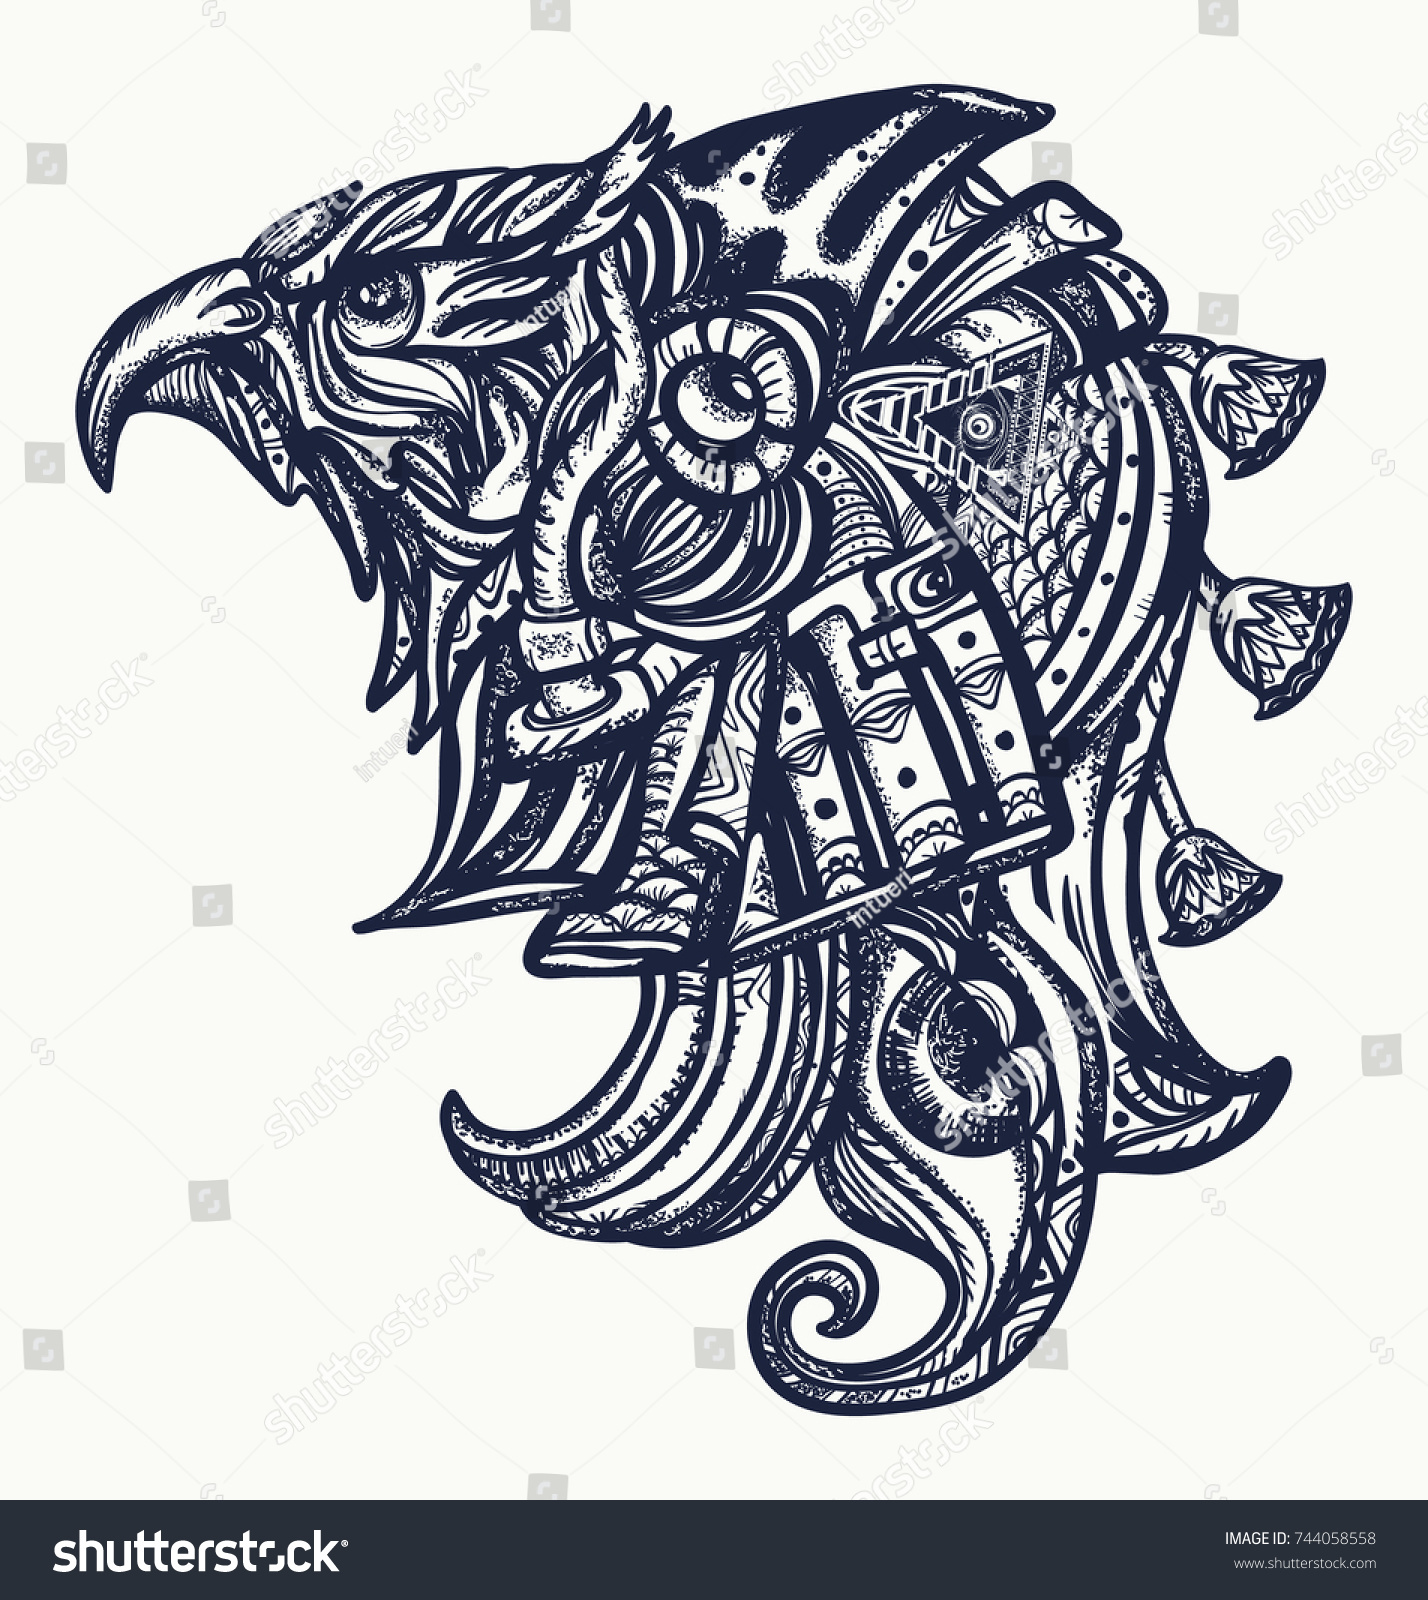 Ancient Egypt Tattoo Tshirt Design Horus Gods Stock Vector Royalty